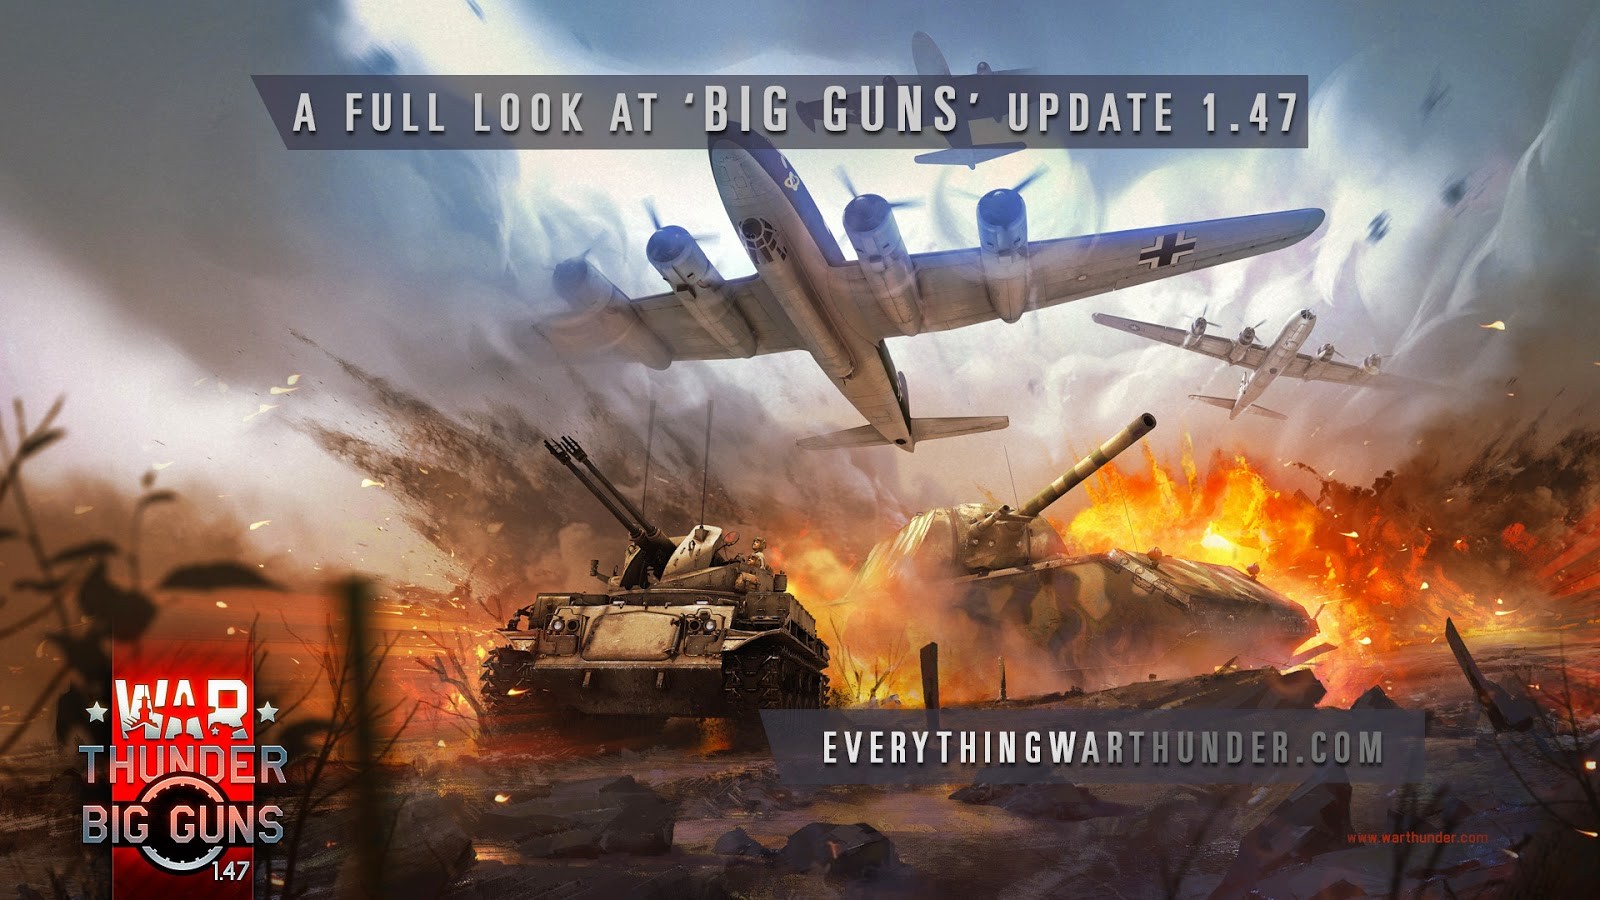 welcome to everything war thunder in this post we ll be looking at war thunder s new big guns update 1 47 this includes many of the new pilot and tank